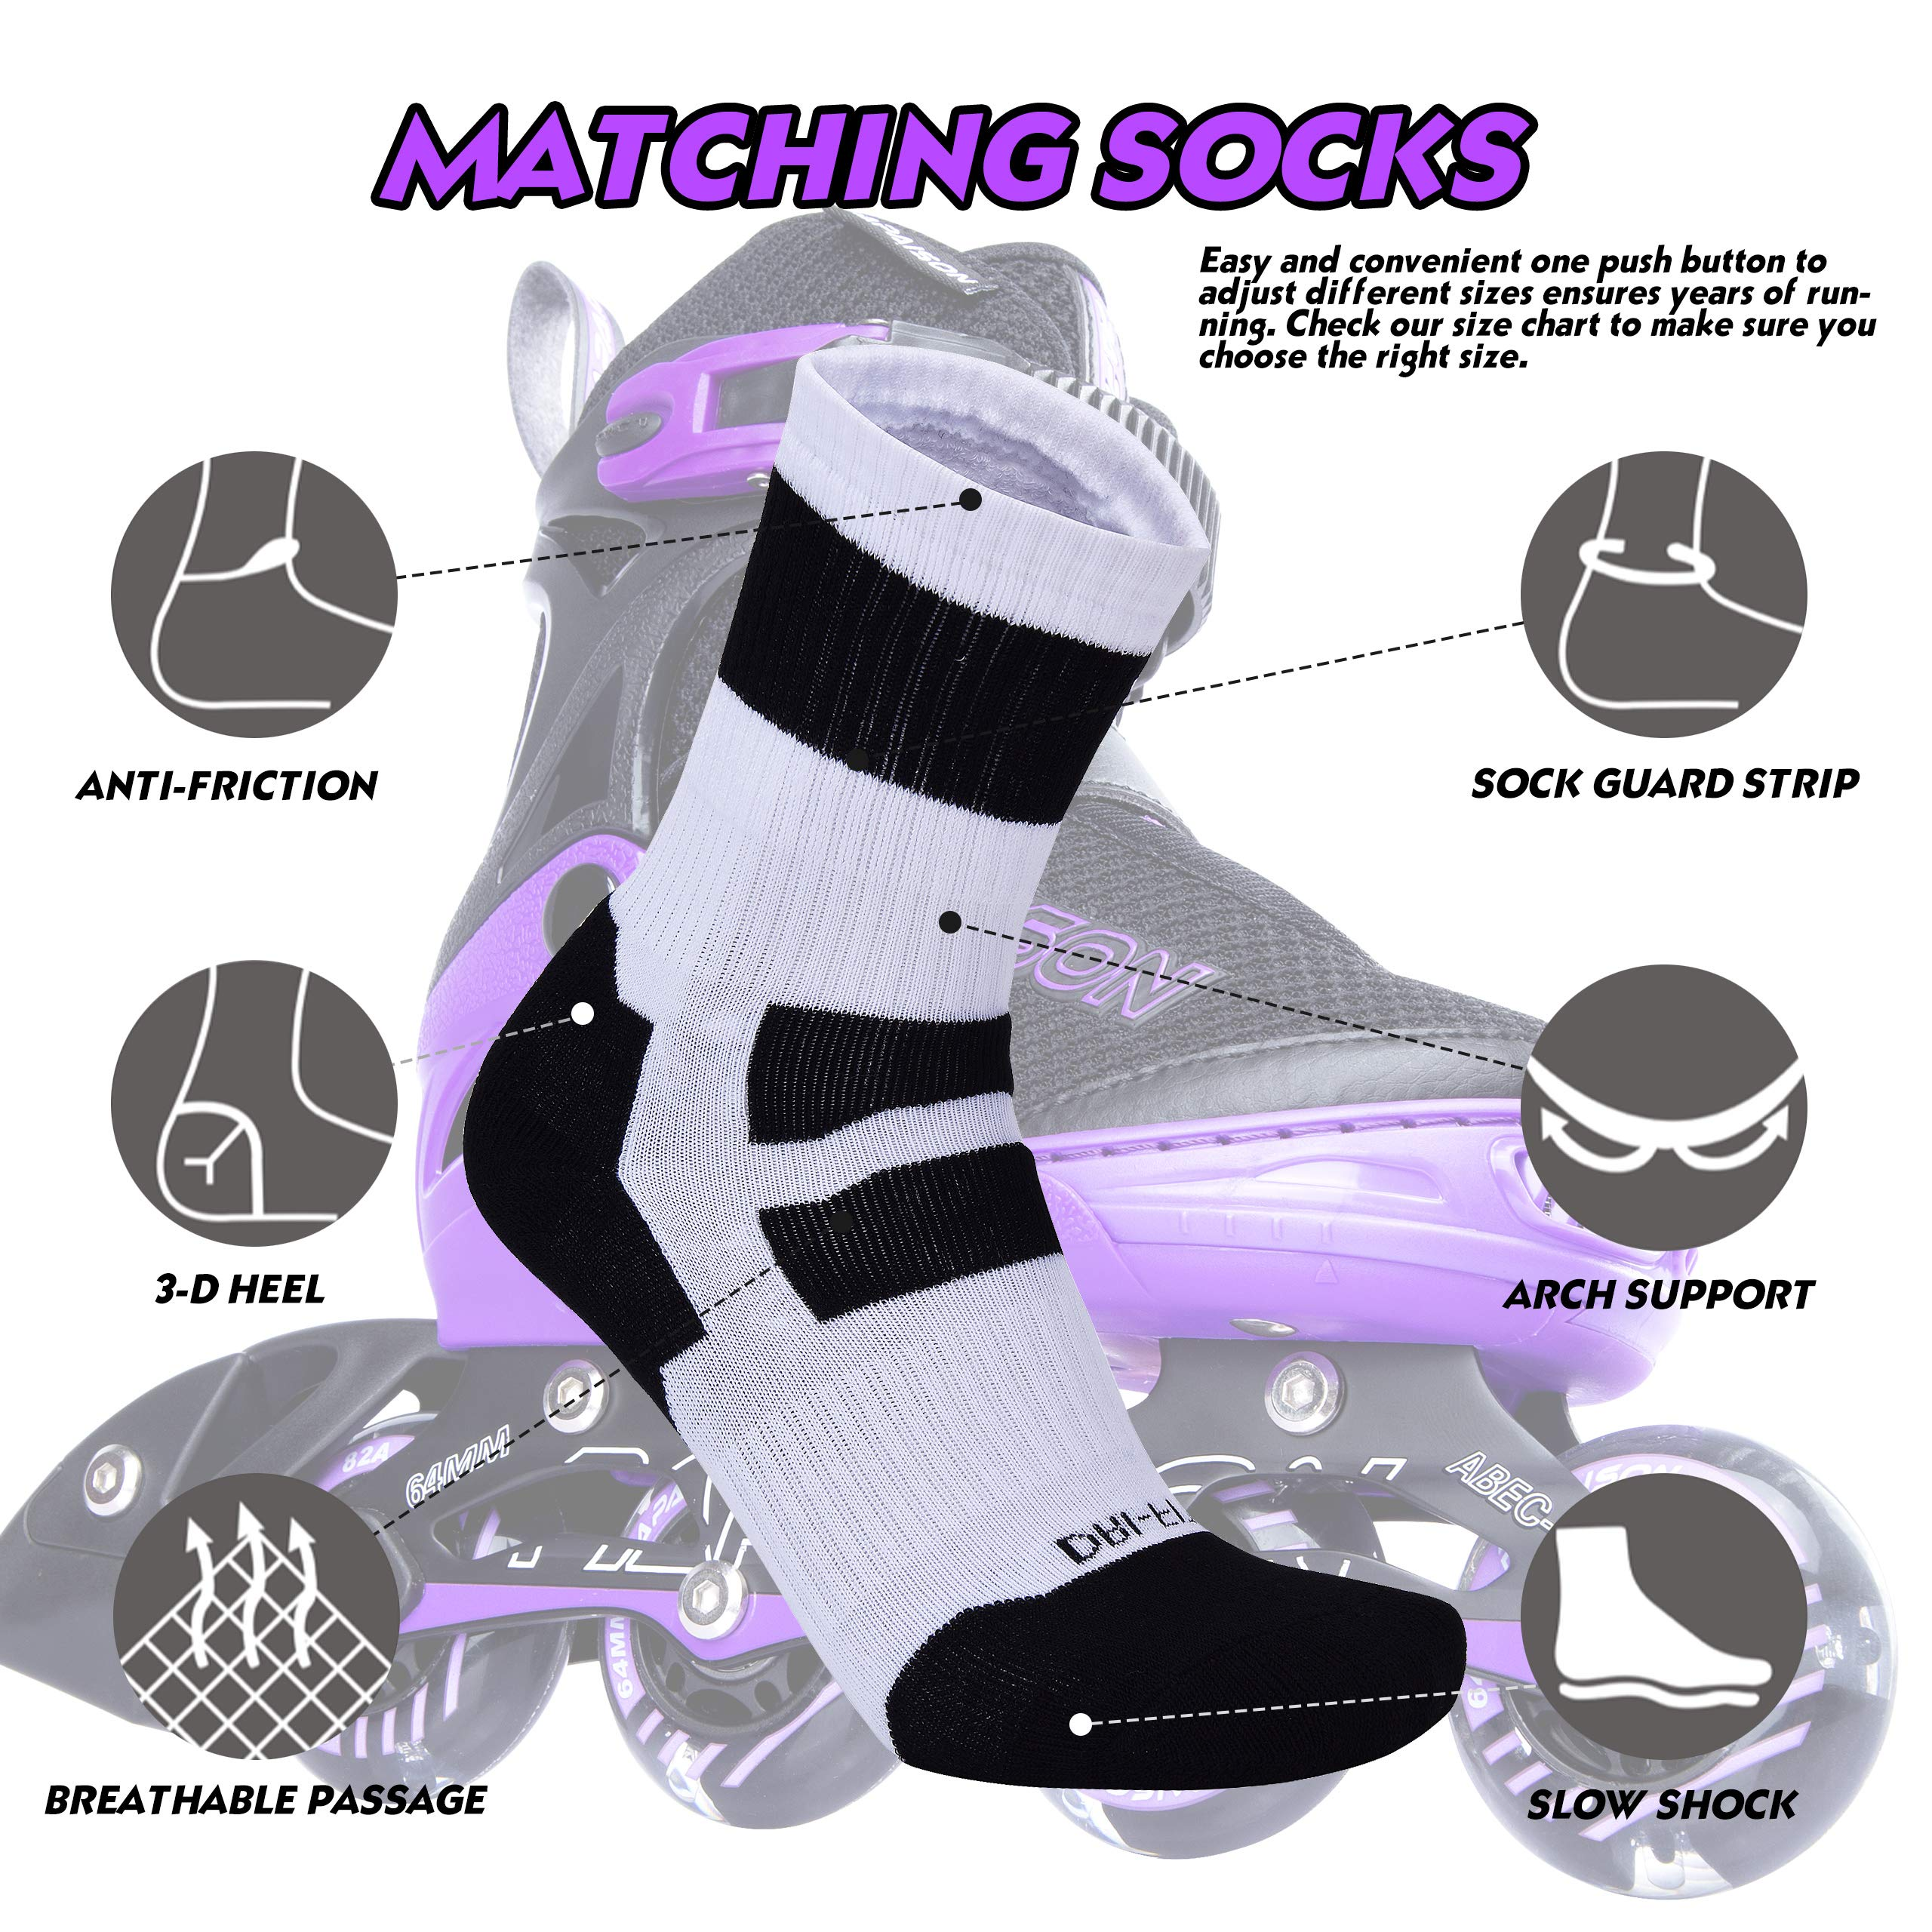 PAPAISON SPORTS Adjustable Inline Skates for Kids and Adults with Full Light Up LED Wheels, Outdoor Rollerblades for Girls and Boys, Men and Women by PAPAISON SPORTS (Image #3)